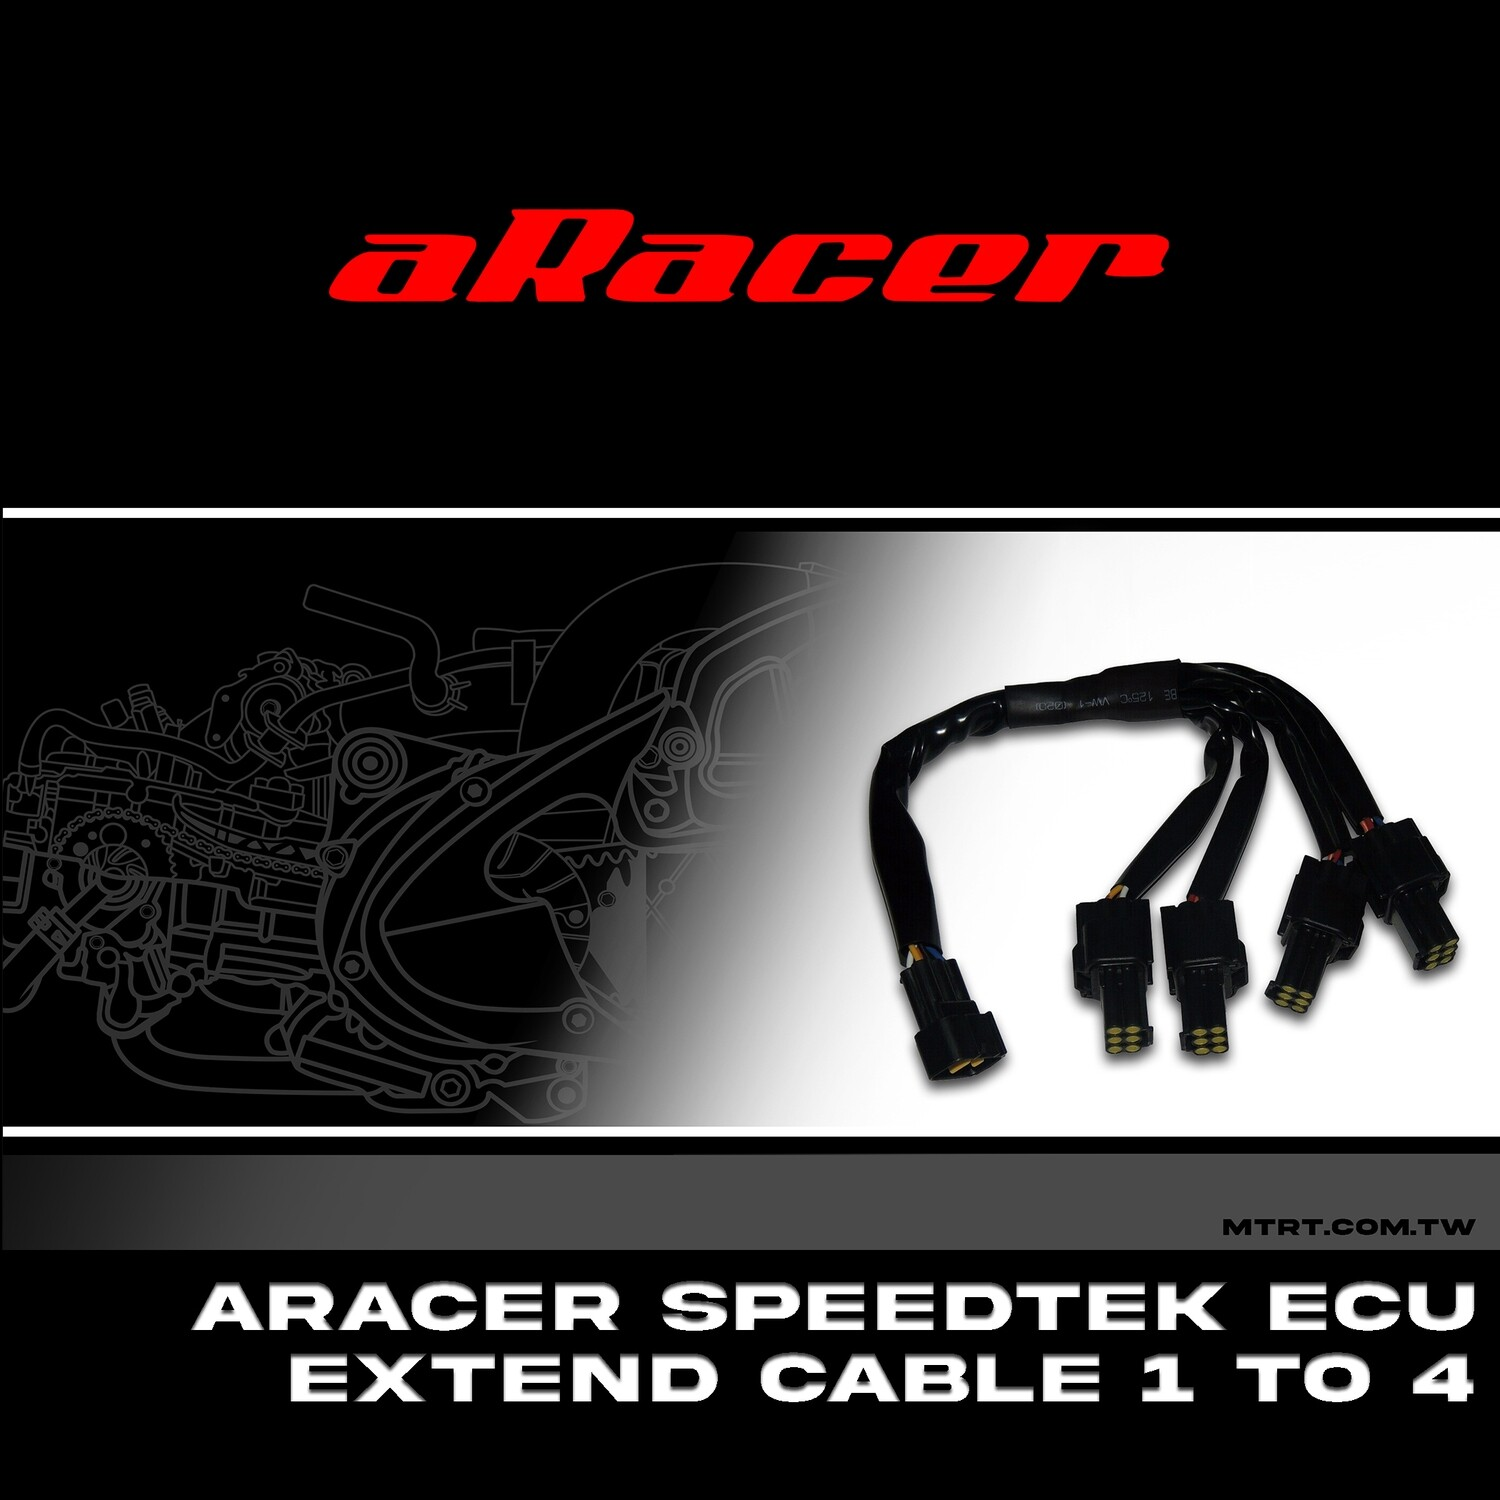 ARACER SPEEDTEK ECU EXTEND CABLE 1 TO 4